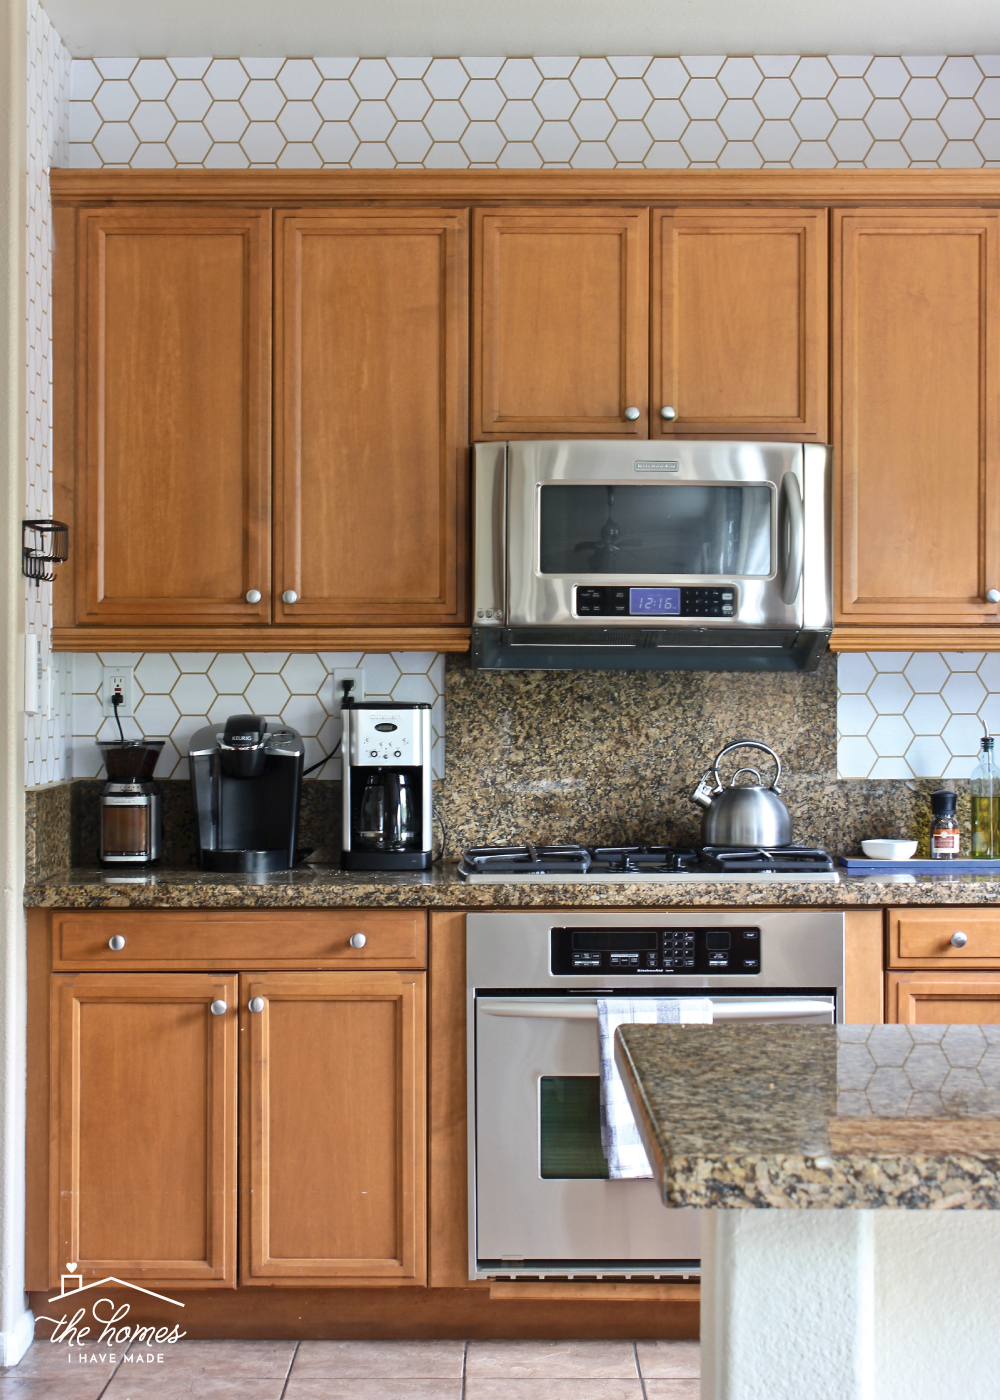 How to Wallpaper a Backsplash The Homes I Have Made 1000x1400